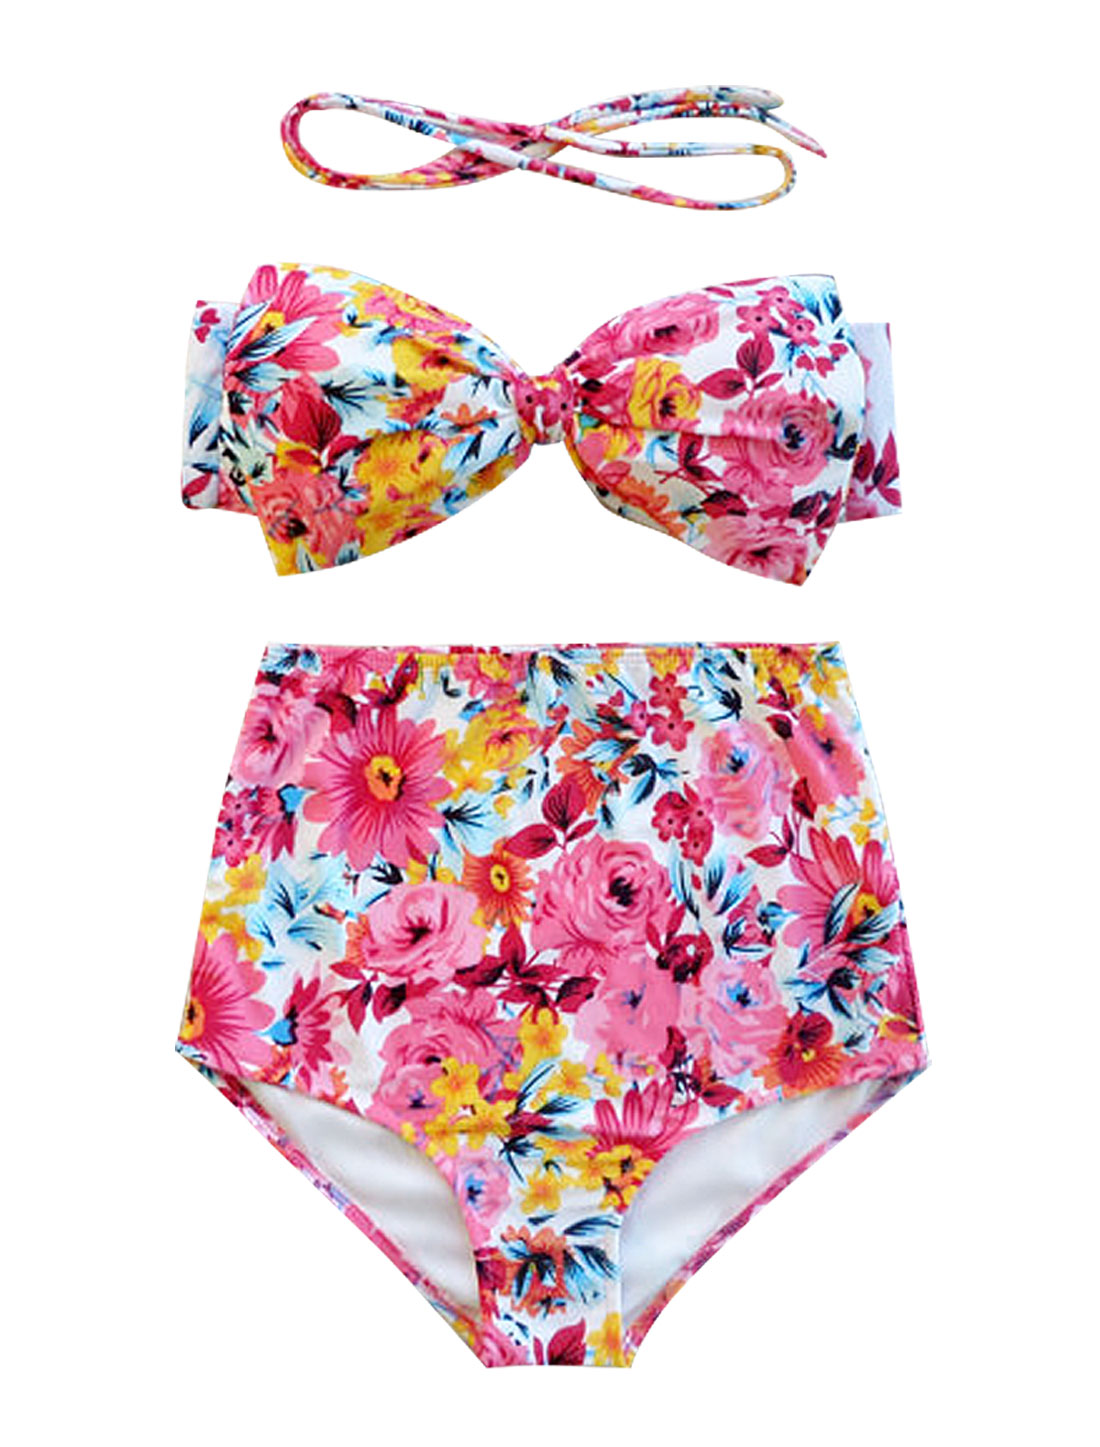 Women Vintage Push-up Padded Bikini Floral High Waist Top Bow Bathing Suit S Pink